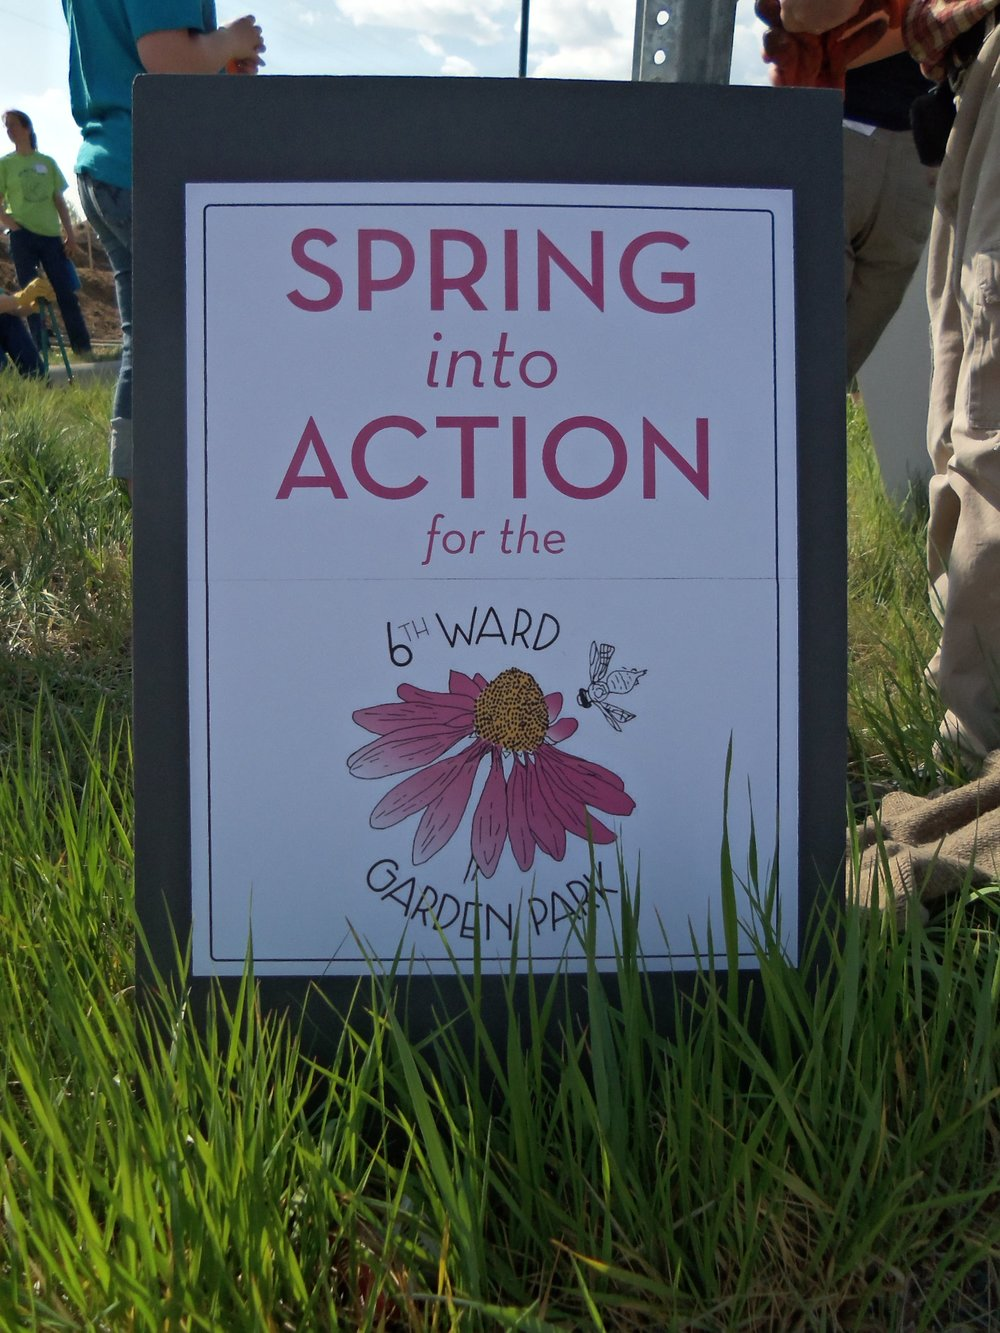 Spring Into Action at the 6th Ward Garden Park!